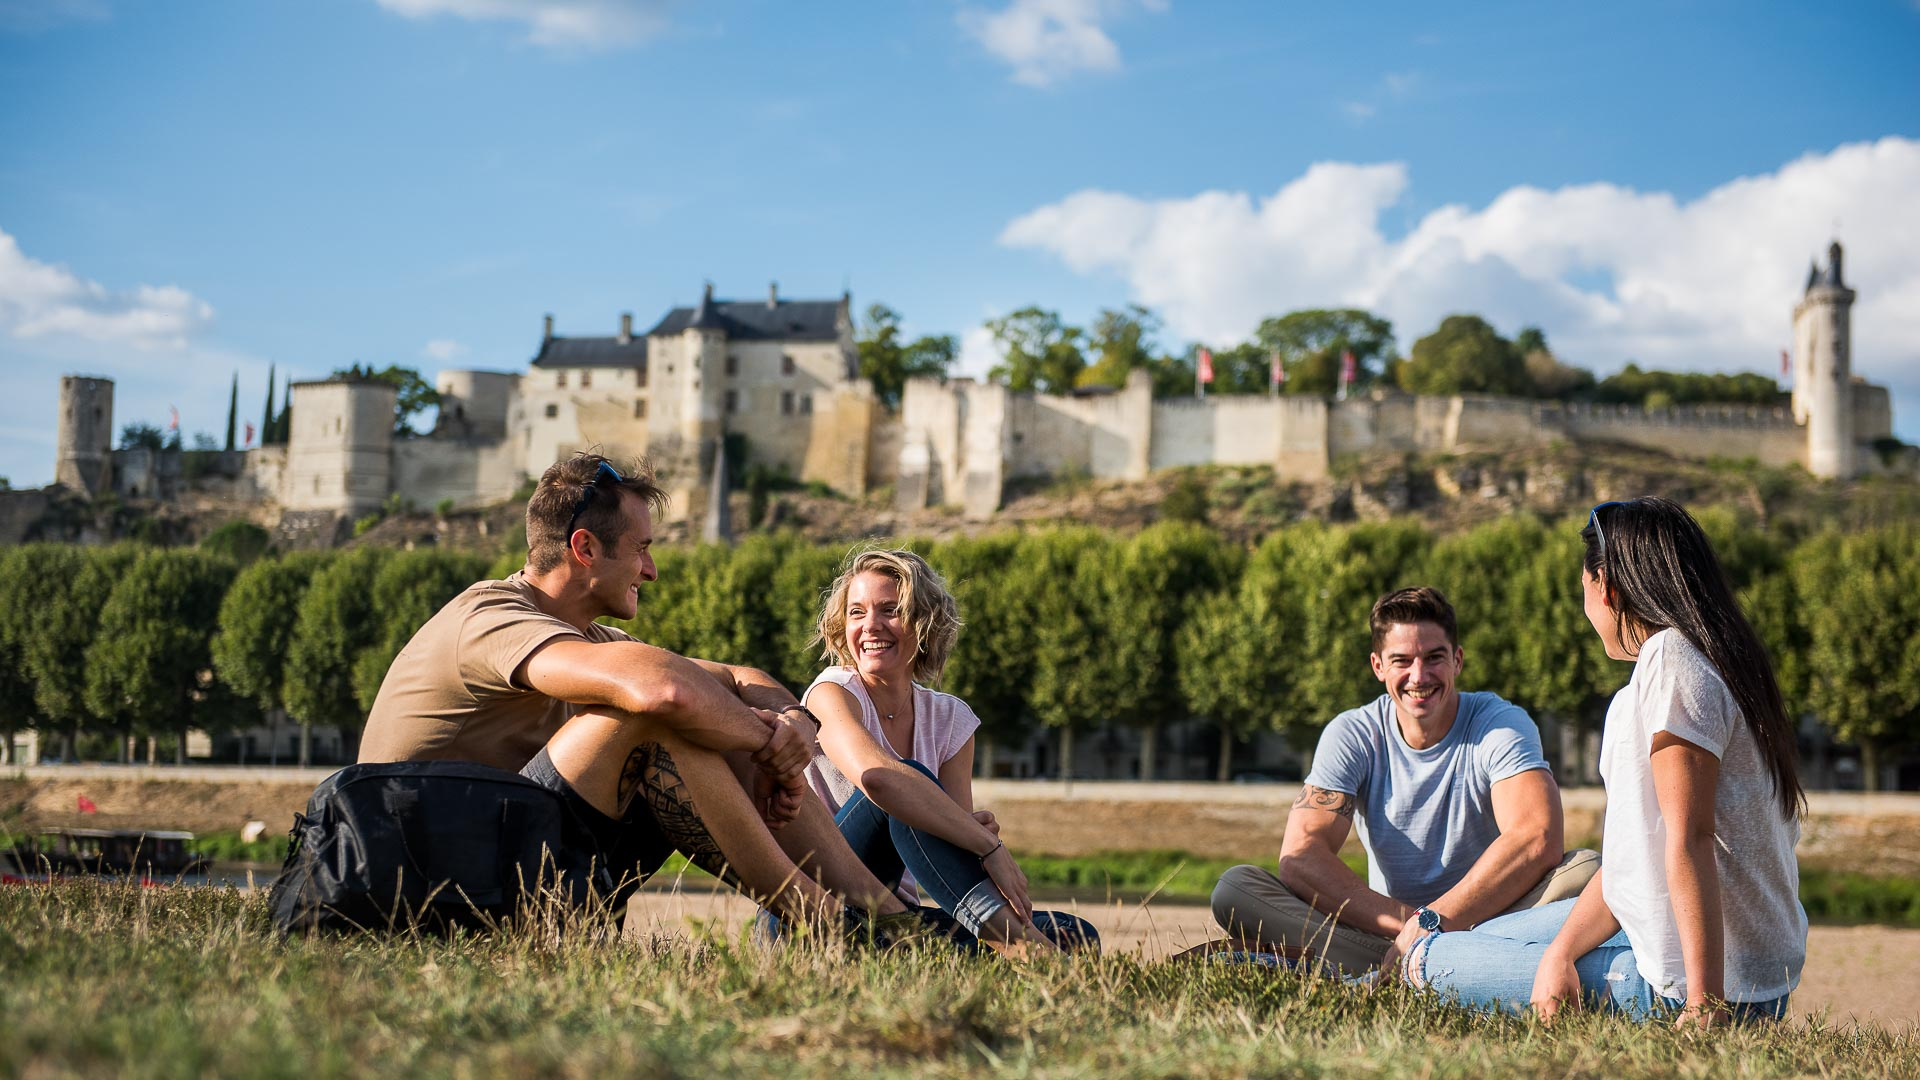 Loire Châteaux - Royal Fortress of Chinon